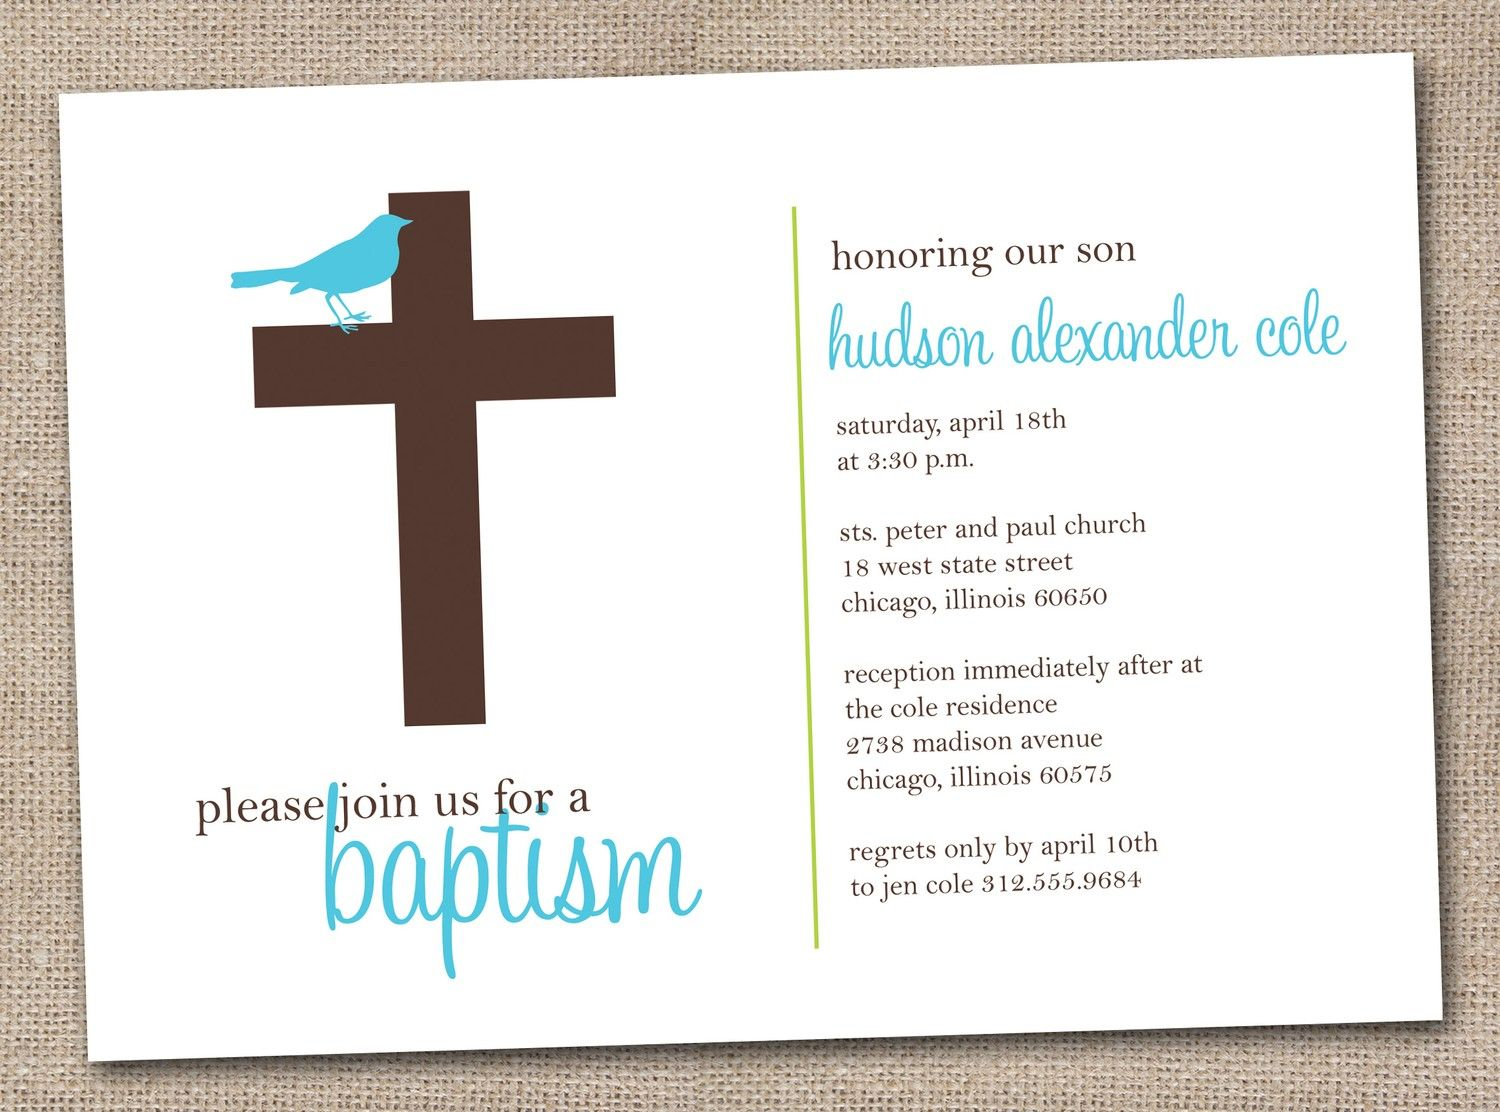 baptism invitations | free printable christening invitations cards, Birthday invitations